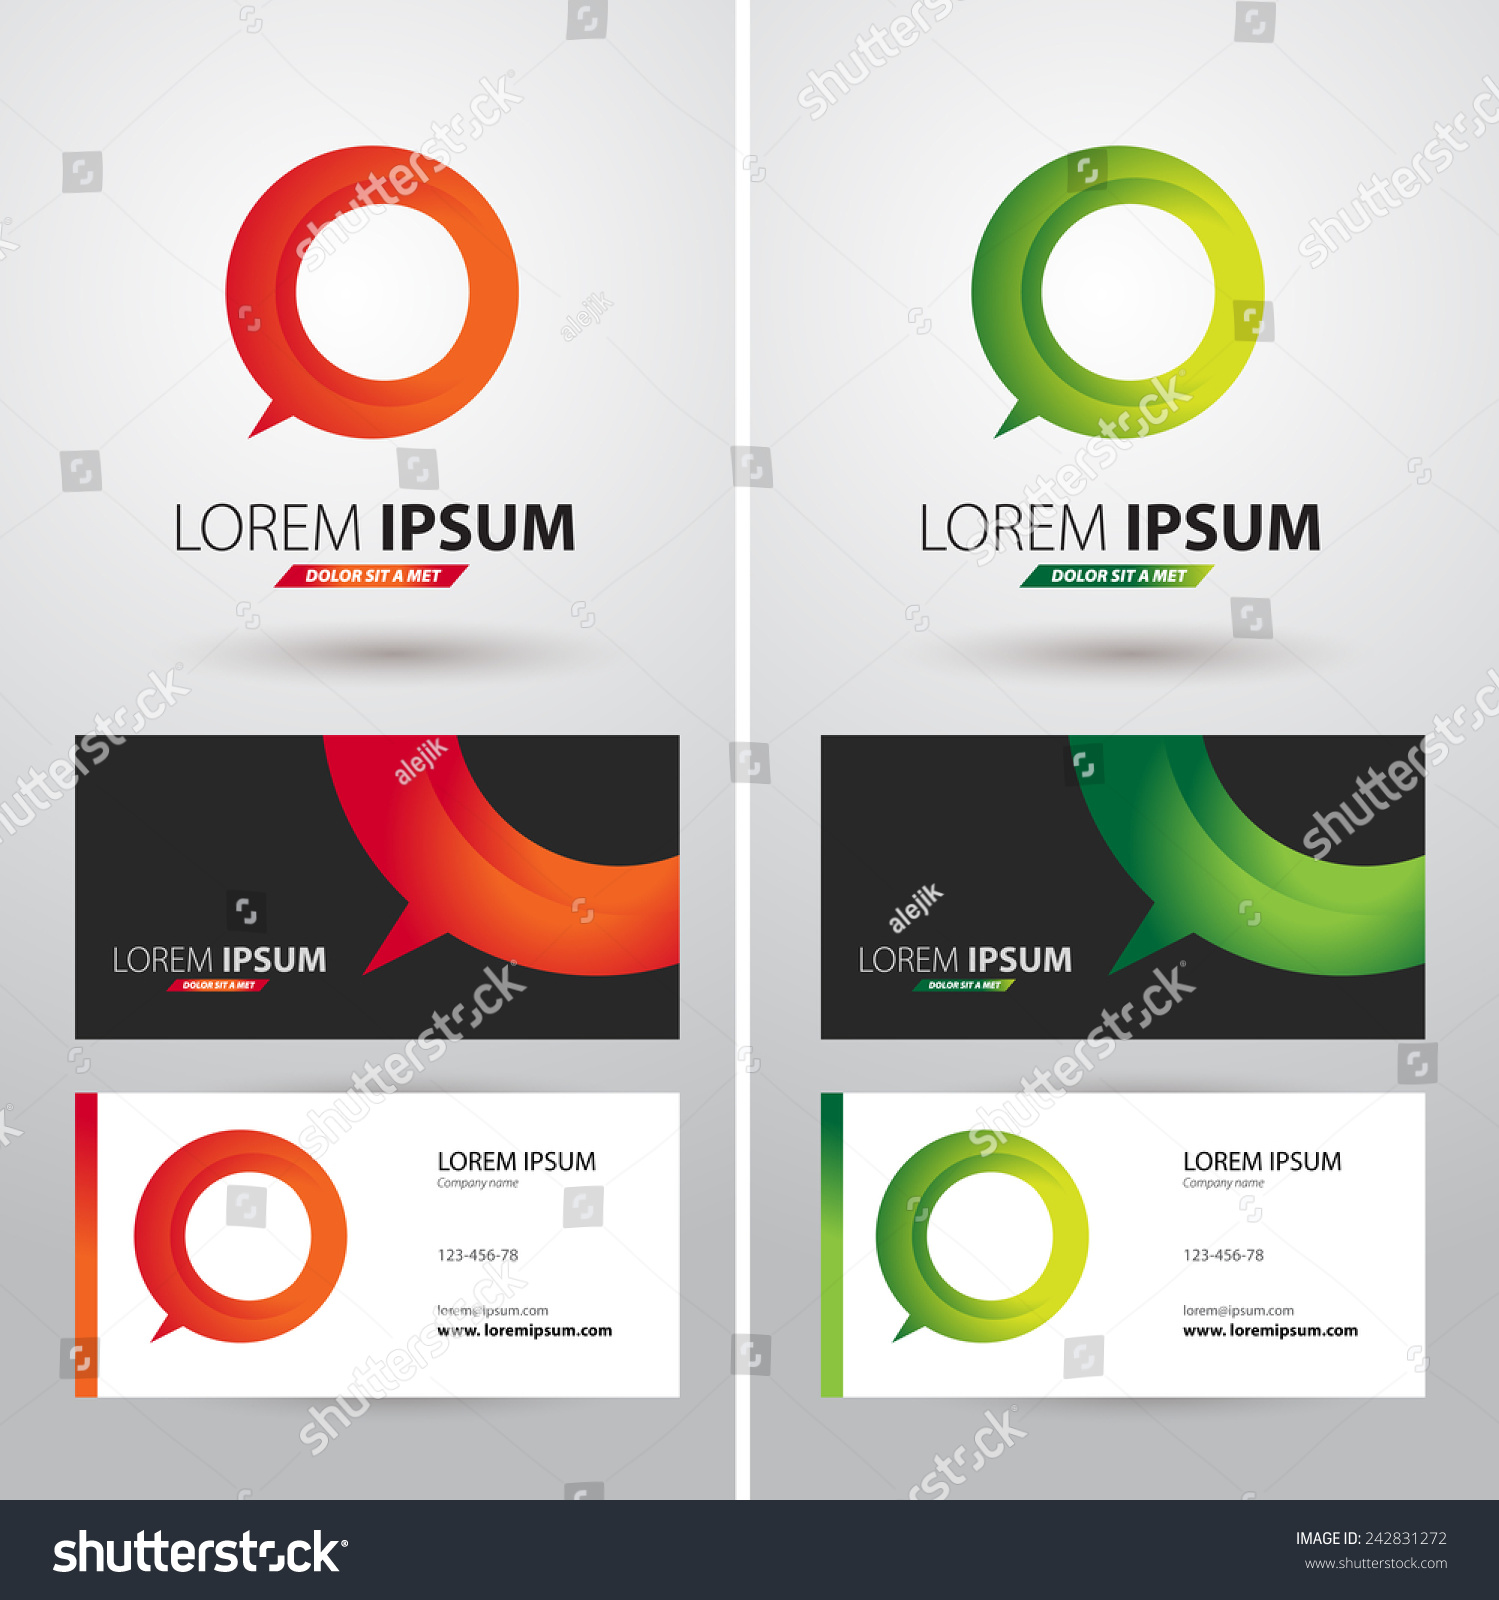 Business card logo text different use stock vector 242831272 business card logo text different use stock vector 242831272 shutterstock reheart Image collections